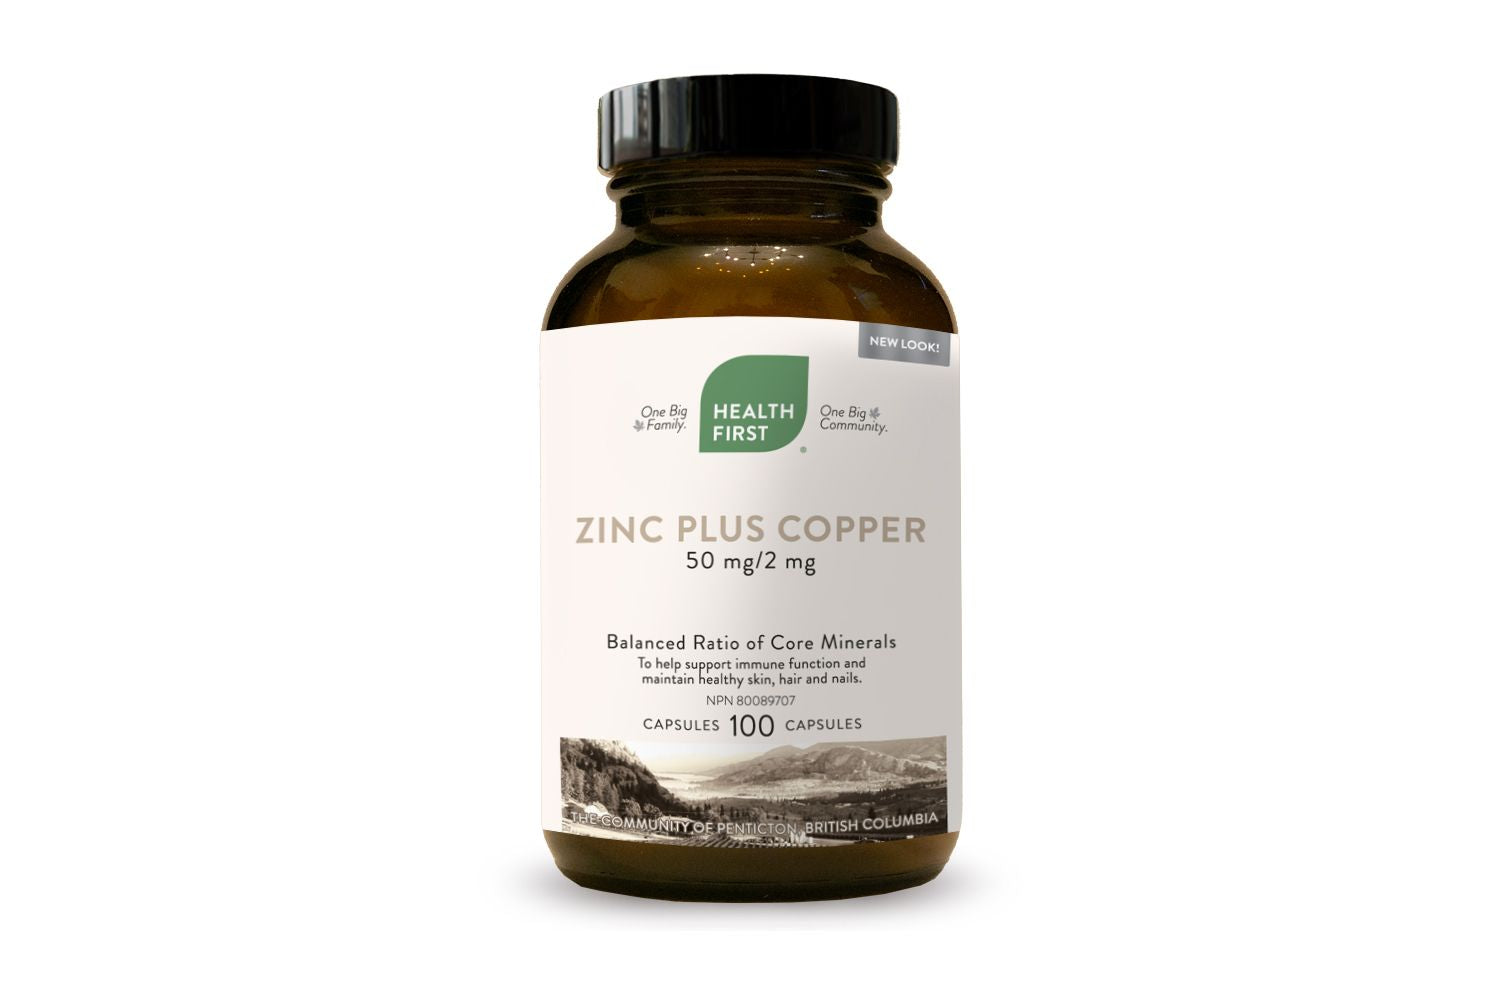 Health First Zinc Plus Copper 50mg/2mg 100 Capsules